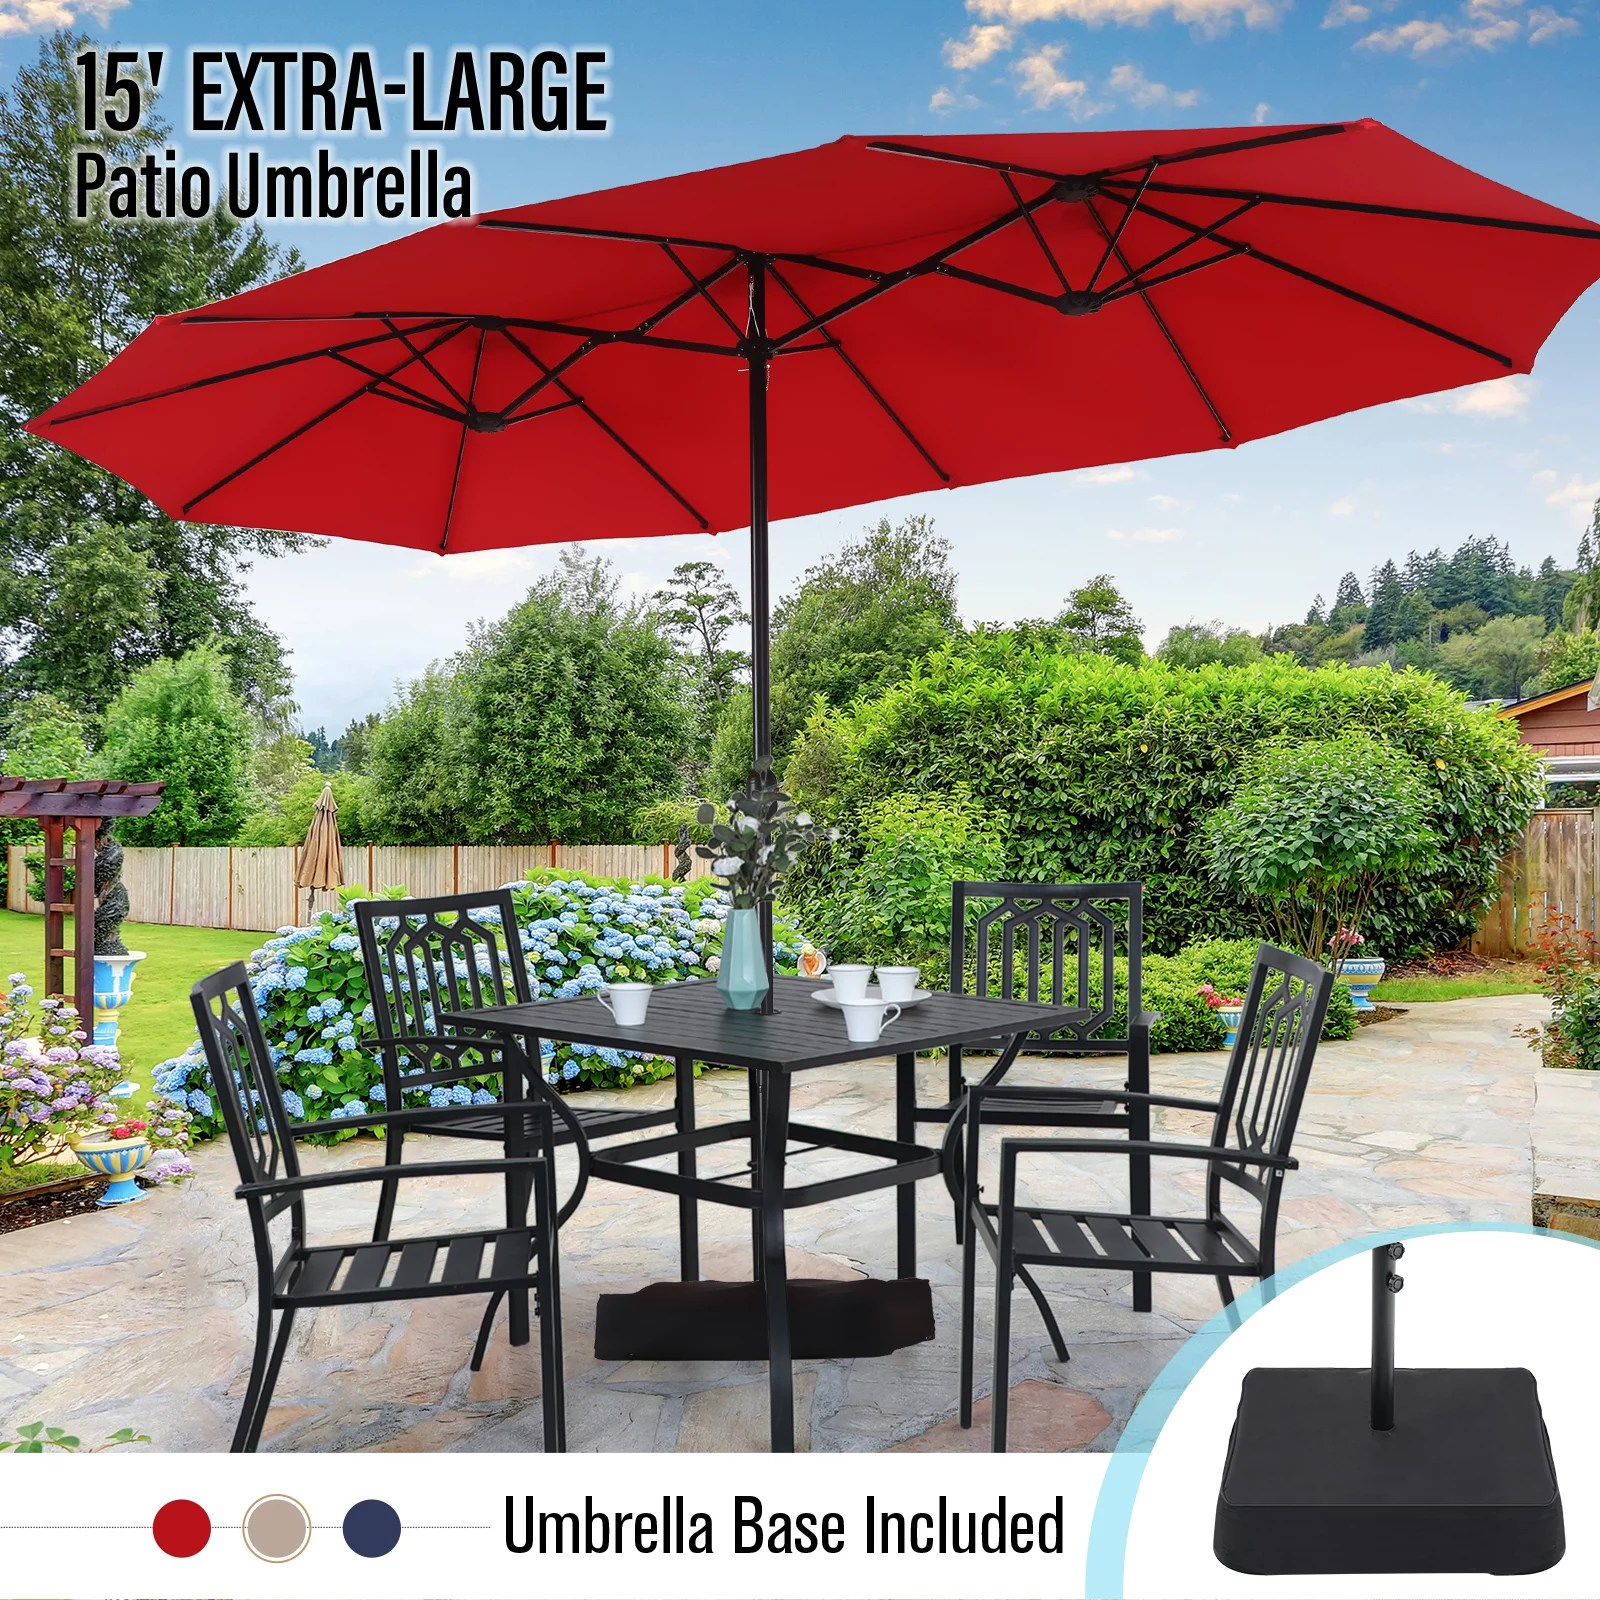 mf studio 15ft double sided patio umbrella with base large outdoor table umbrella red walmart com